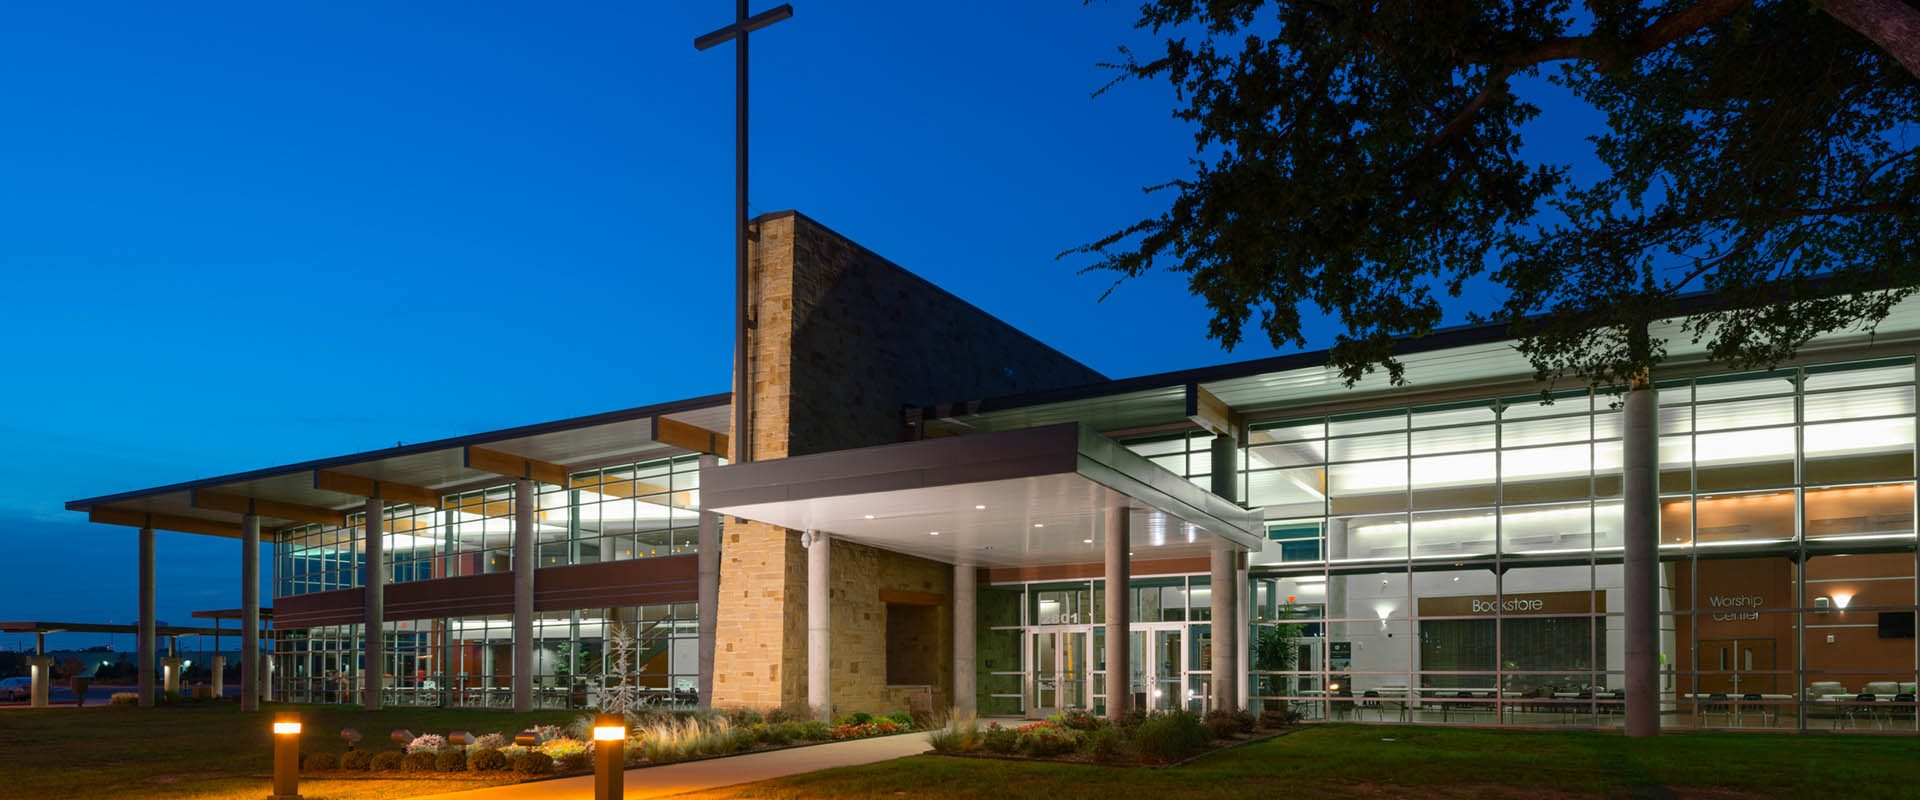 North Dallas Community Bible Fellowship, for HH Architects